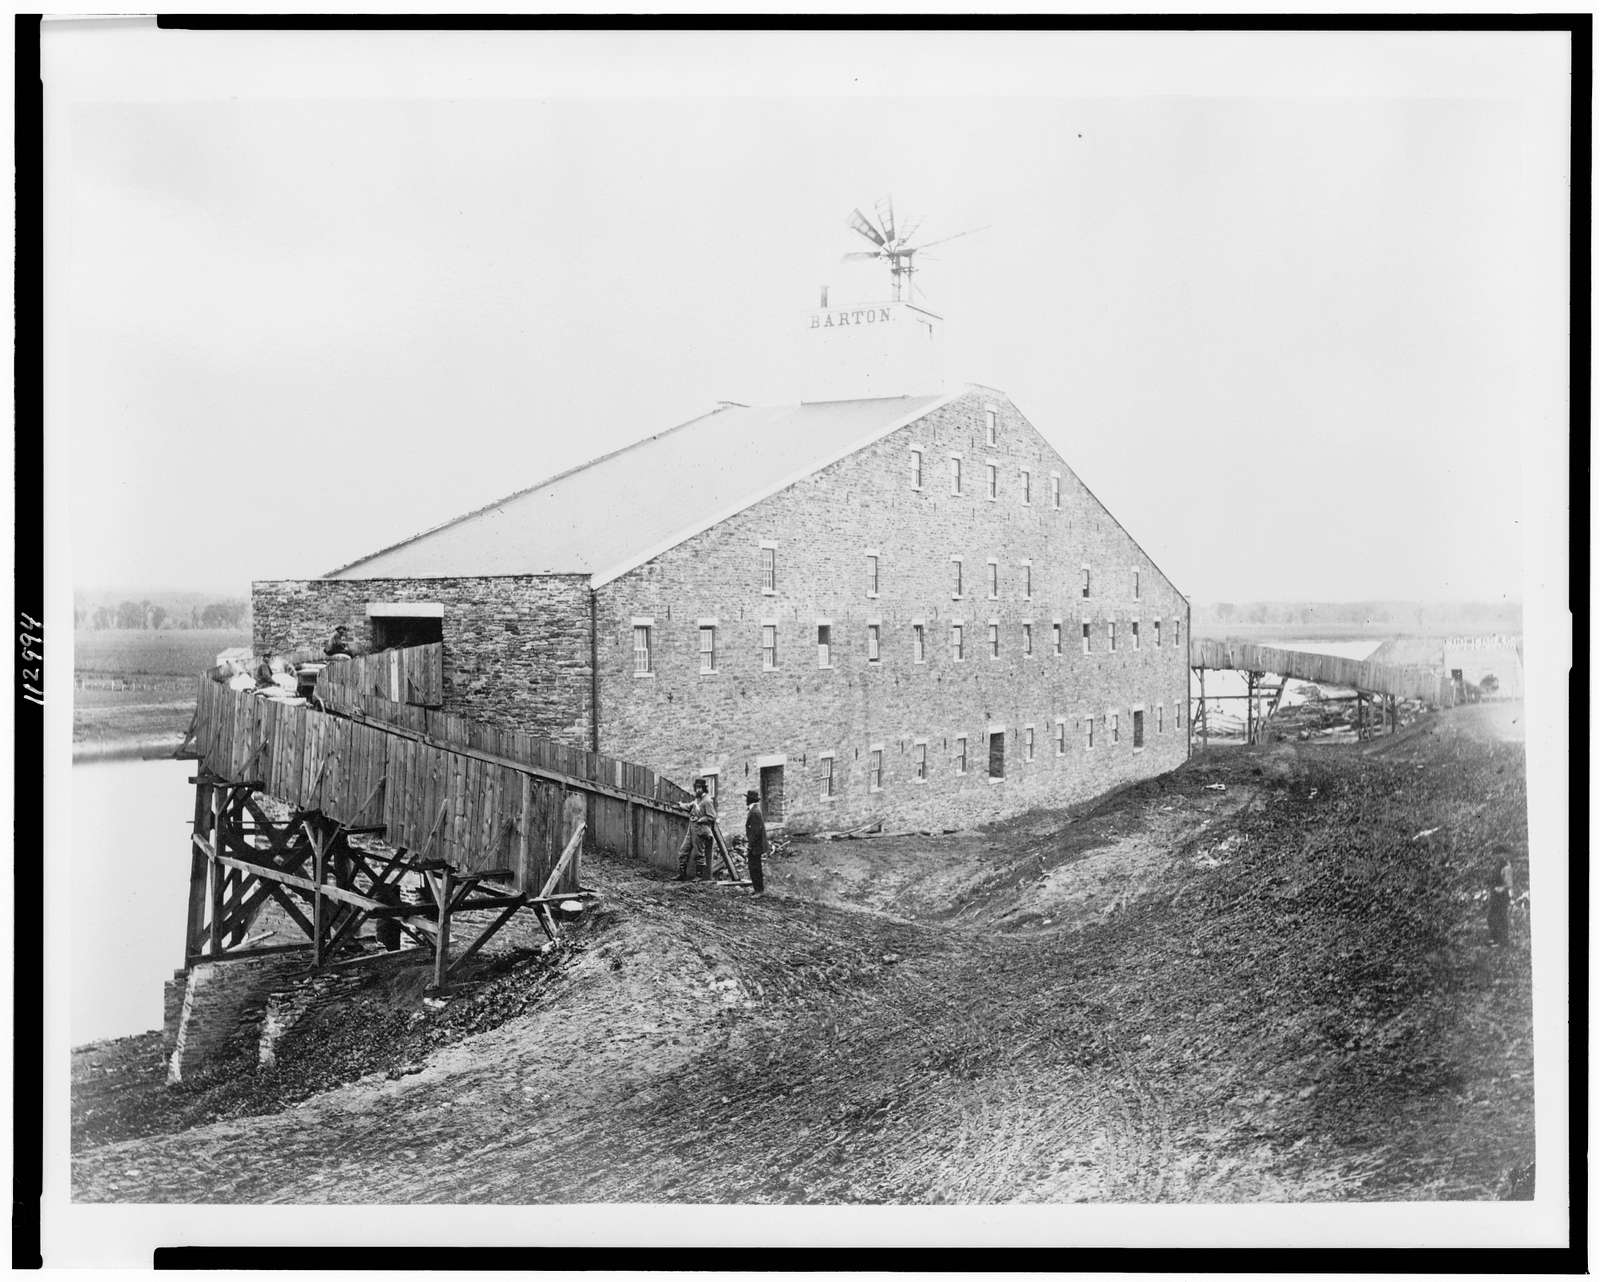 """[Lumber(?) mill with """"Barton"""" sign on top]"""